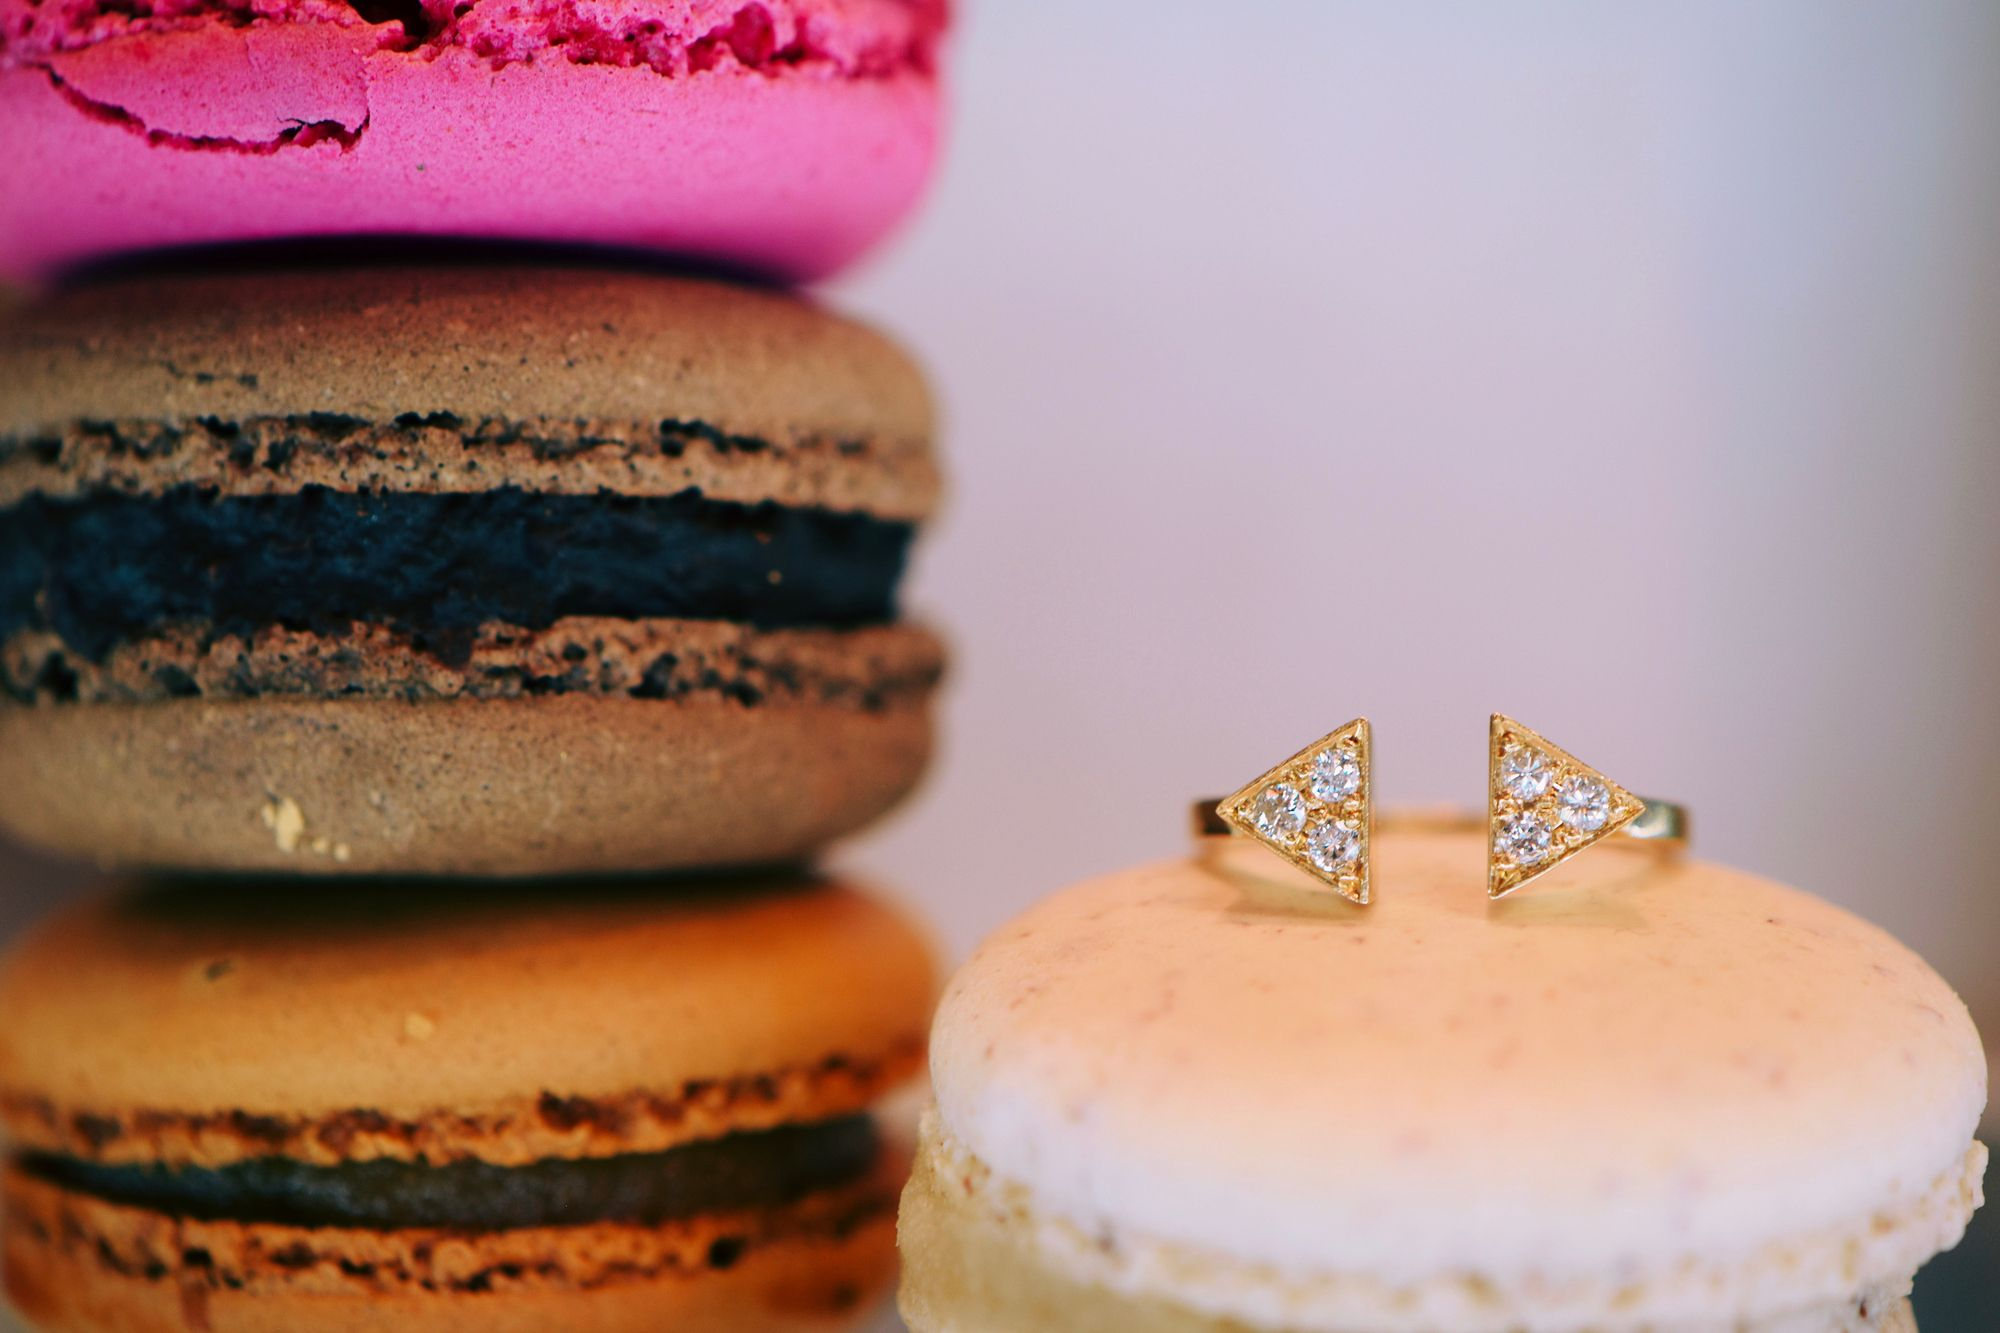 Box of Macarons or Box of Chocolates Which do you prefer? 🍫 #valentinesgift #macaronlovers #diamondrings #sweettoothforever #sweetiepie #candybox #ringsofinstagram #vibrantlife #colorfullife #diamondjewelry #goldrings #handmadejewelry #jewelrysale #onlinesale #dealoftheday #stackablerings #everydayjewelry #willyoubemyvalentine #galentinesday #jewelrytrends #promisering #ringbling #ringoftheday #statementring #dreamring #sweetsformysweet #soinlovewithyou #valentinesday2020 #elissarcouture